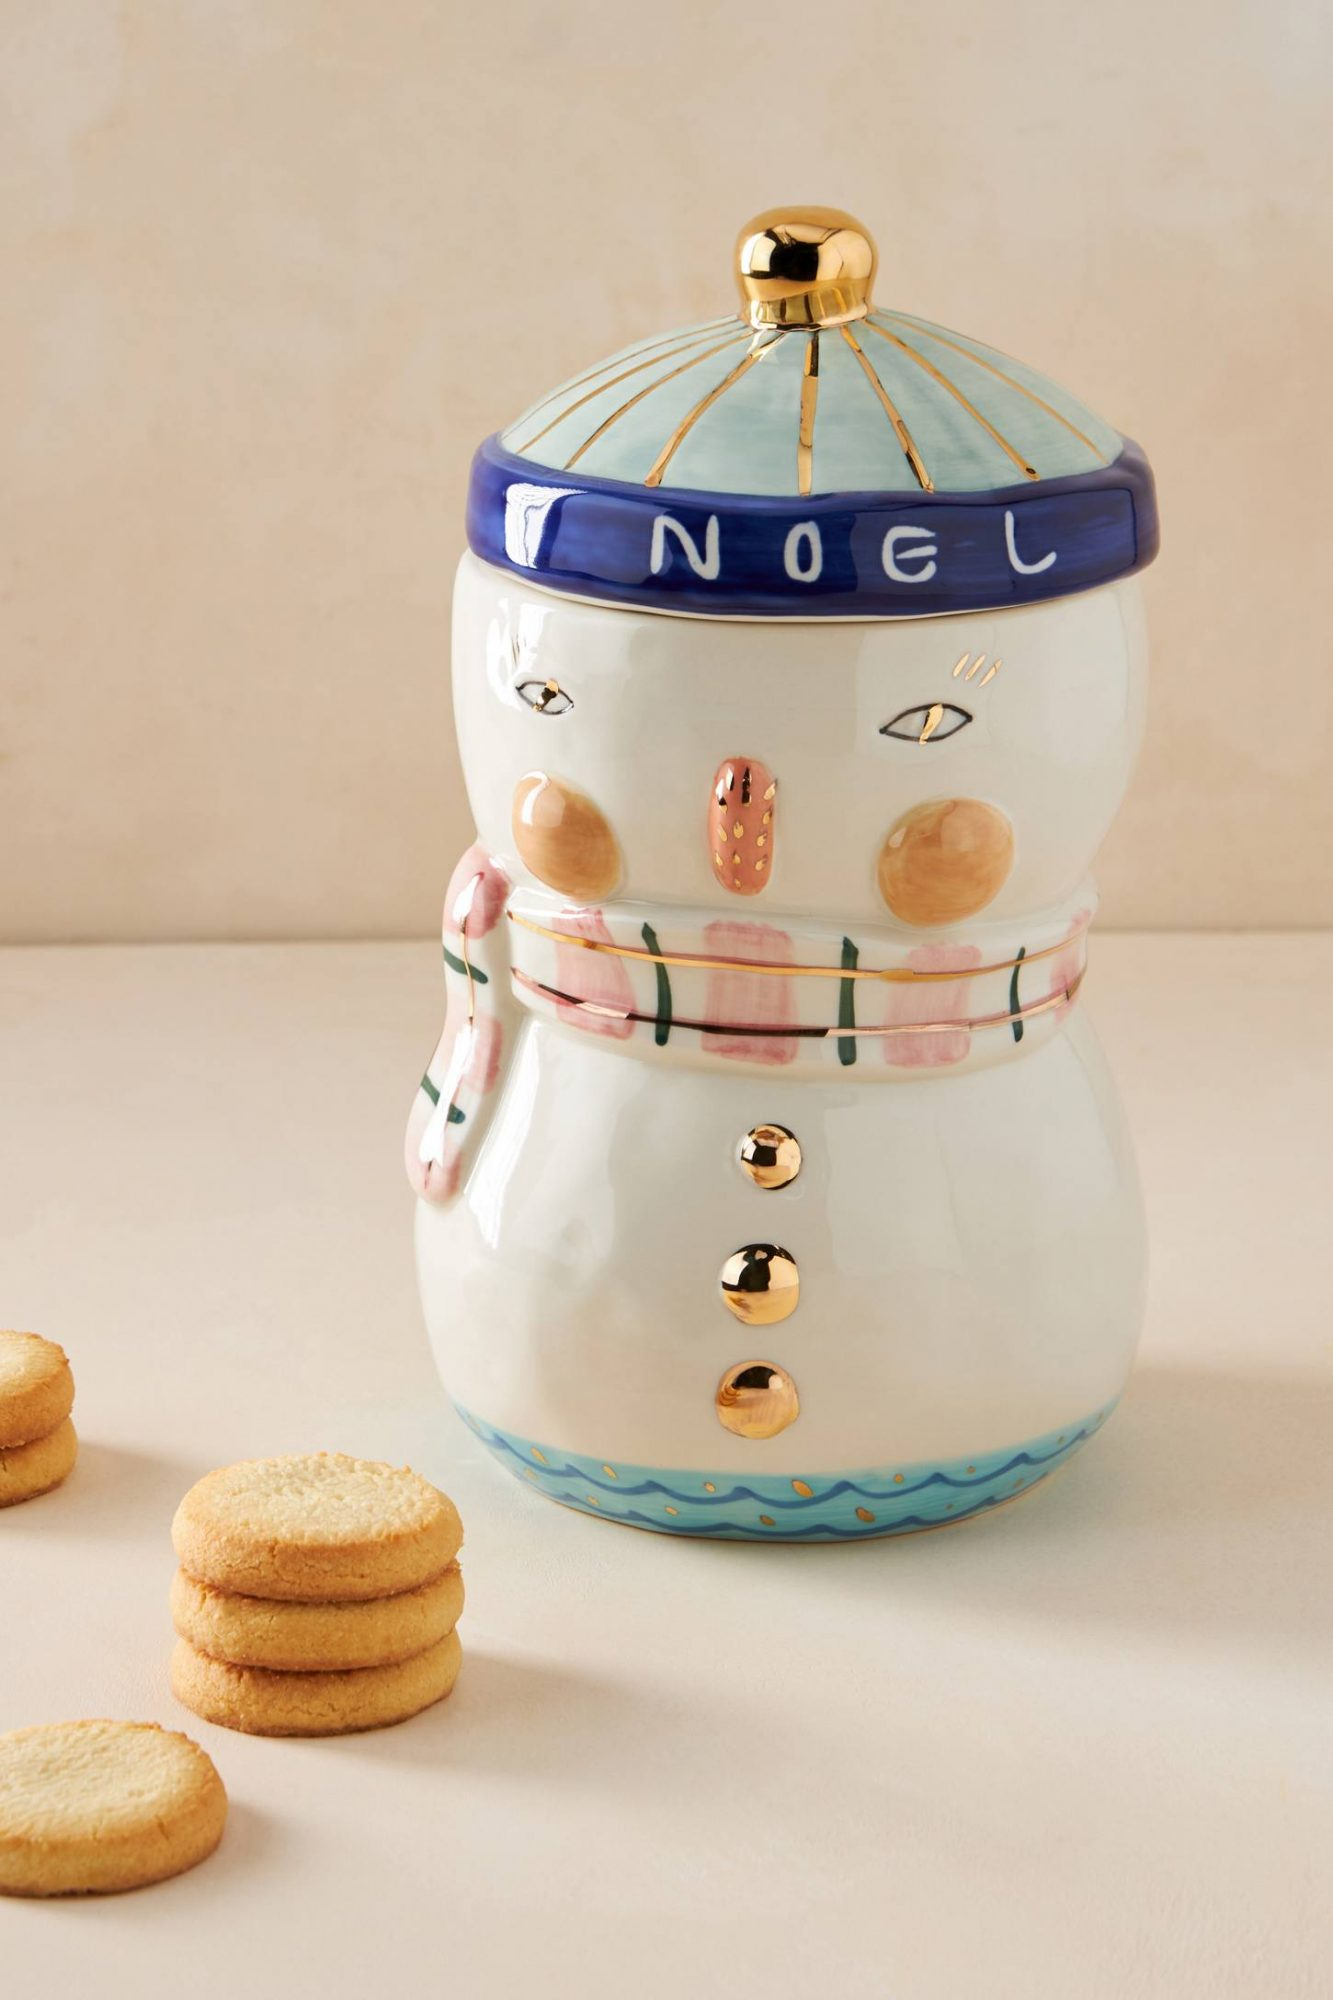 Even if you don't live in a snowy climate, you can still enjoy a white Christmas with this sweet-as-can-be snowman cookie jar. Instead of snow, this snowman is made of stoneware and will look great on your countertop all winter long.                             Shop Now: BIRDCANFOX Joyeux Noel Snowman Cookie Jar, $58, anthropologie.com.